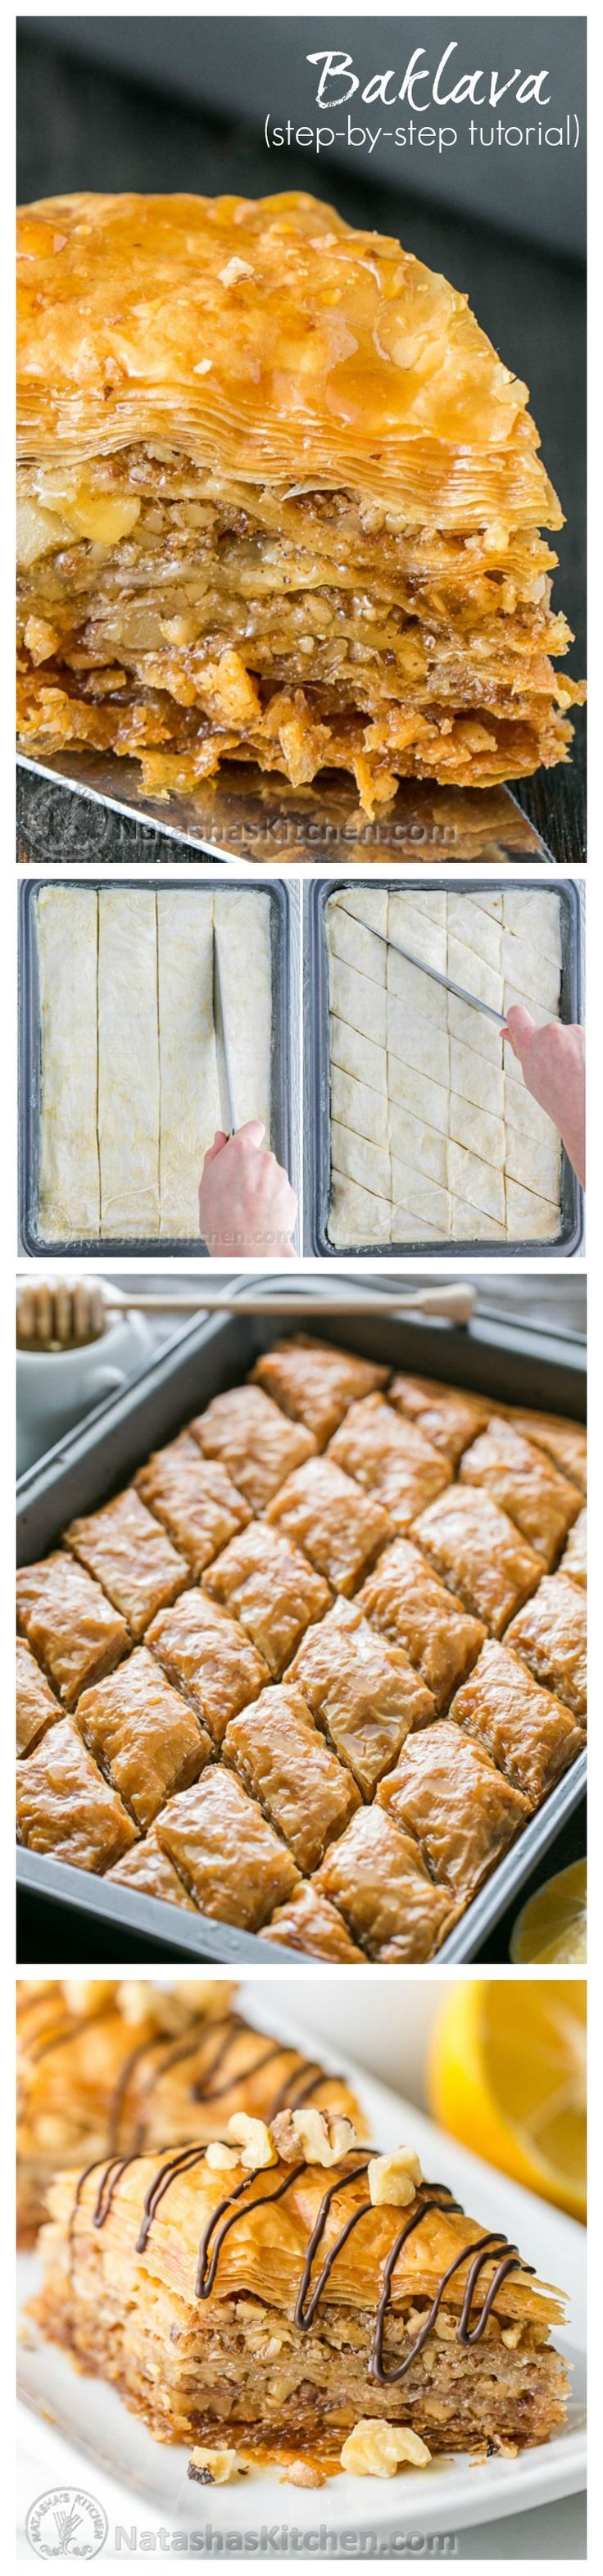 This baklava is flaky, crisp, tender and I love that it's not overly sweet. No store-bought baklava can touch this!